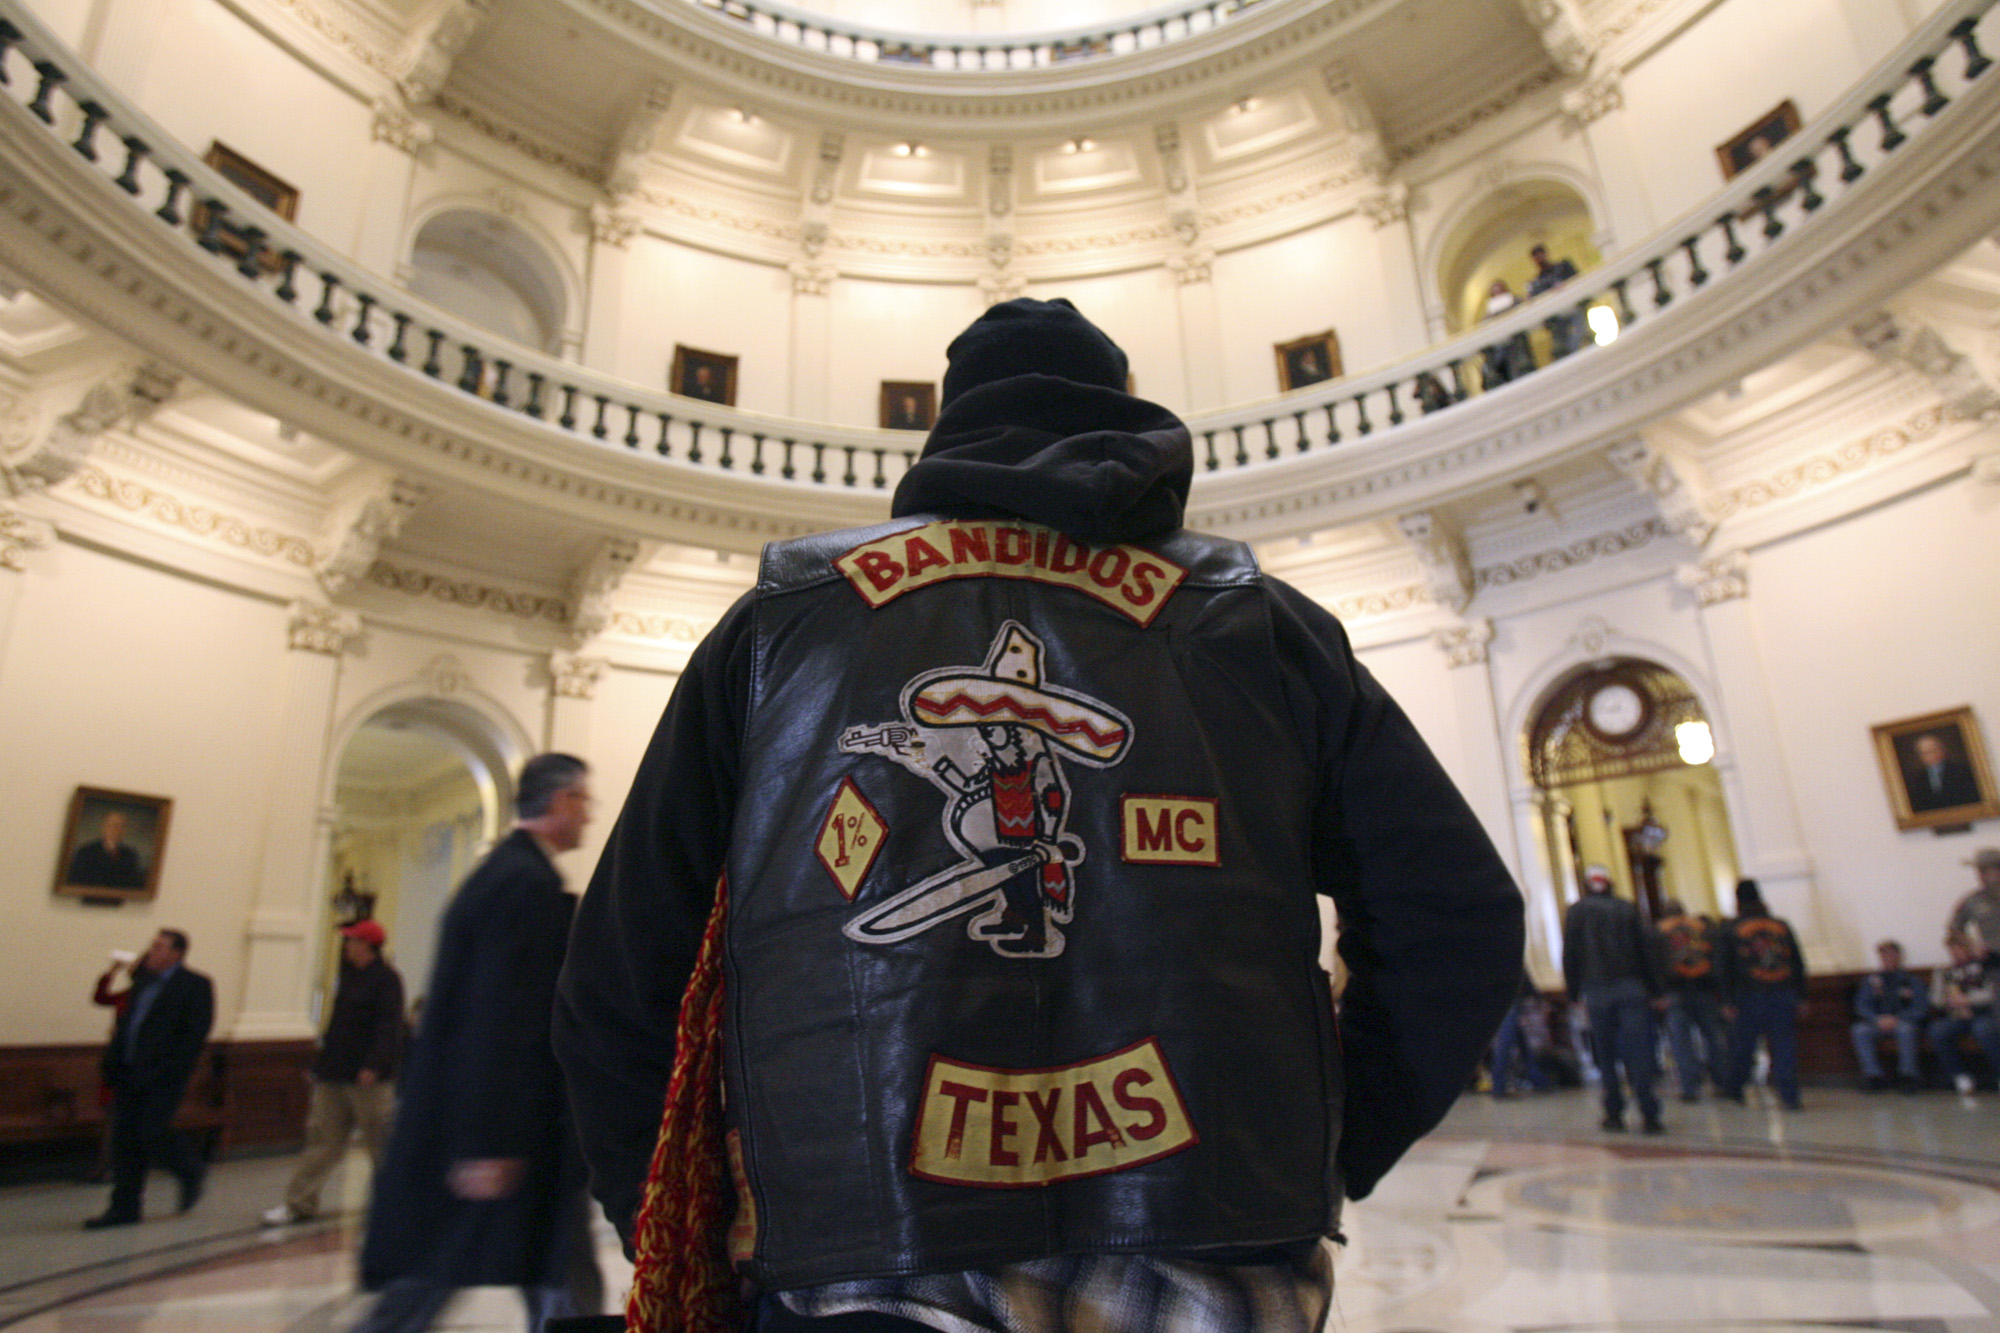 Gang Or Club For Bandidos The Distinction Matters After